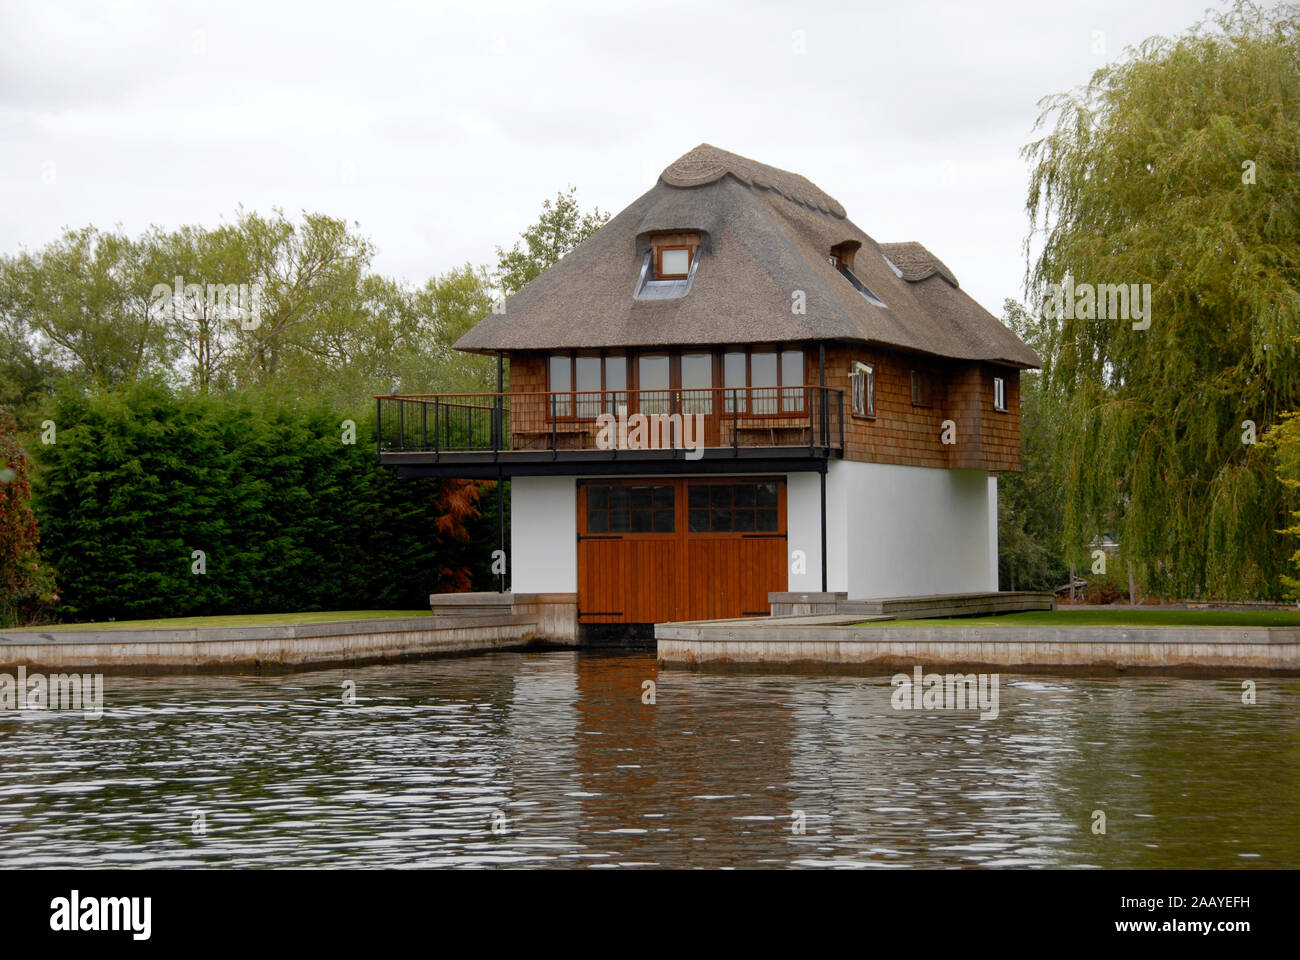 Attractive riverside thatched house built over boathouse, Norfolk Broads, England Stock Photo